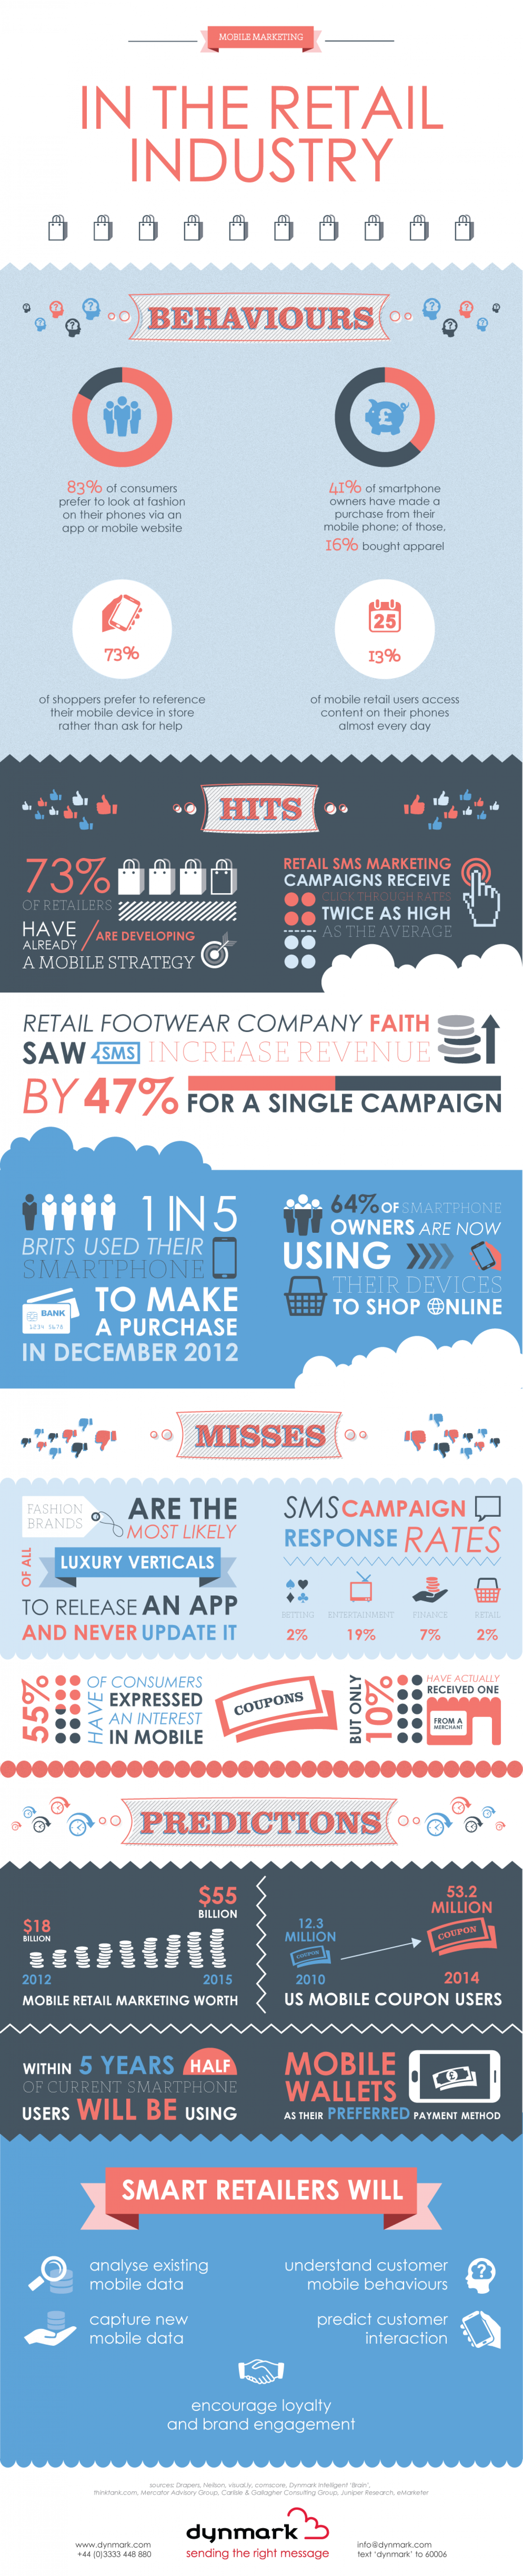 Mobile Marketing in the Retail Industry Infographic